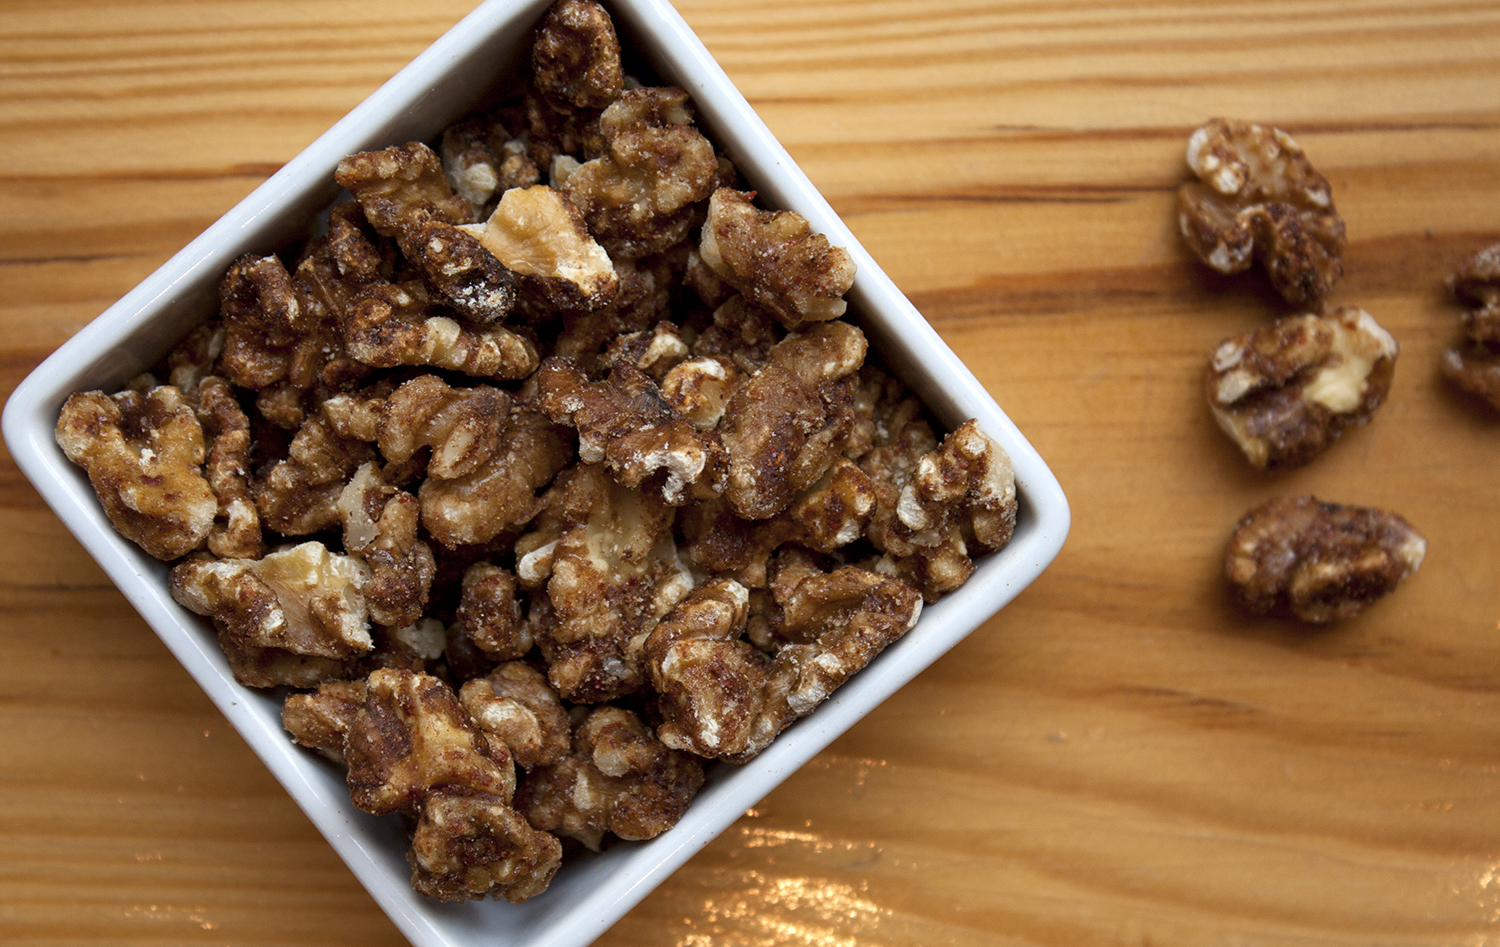 spiced-walnuts3.jpg